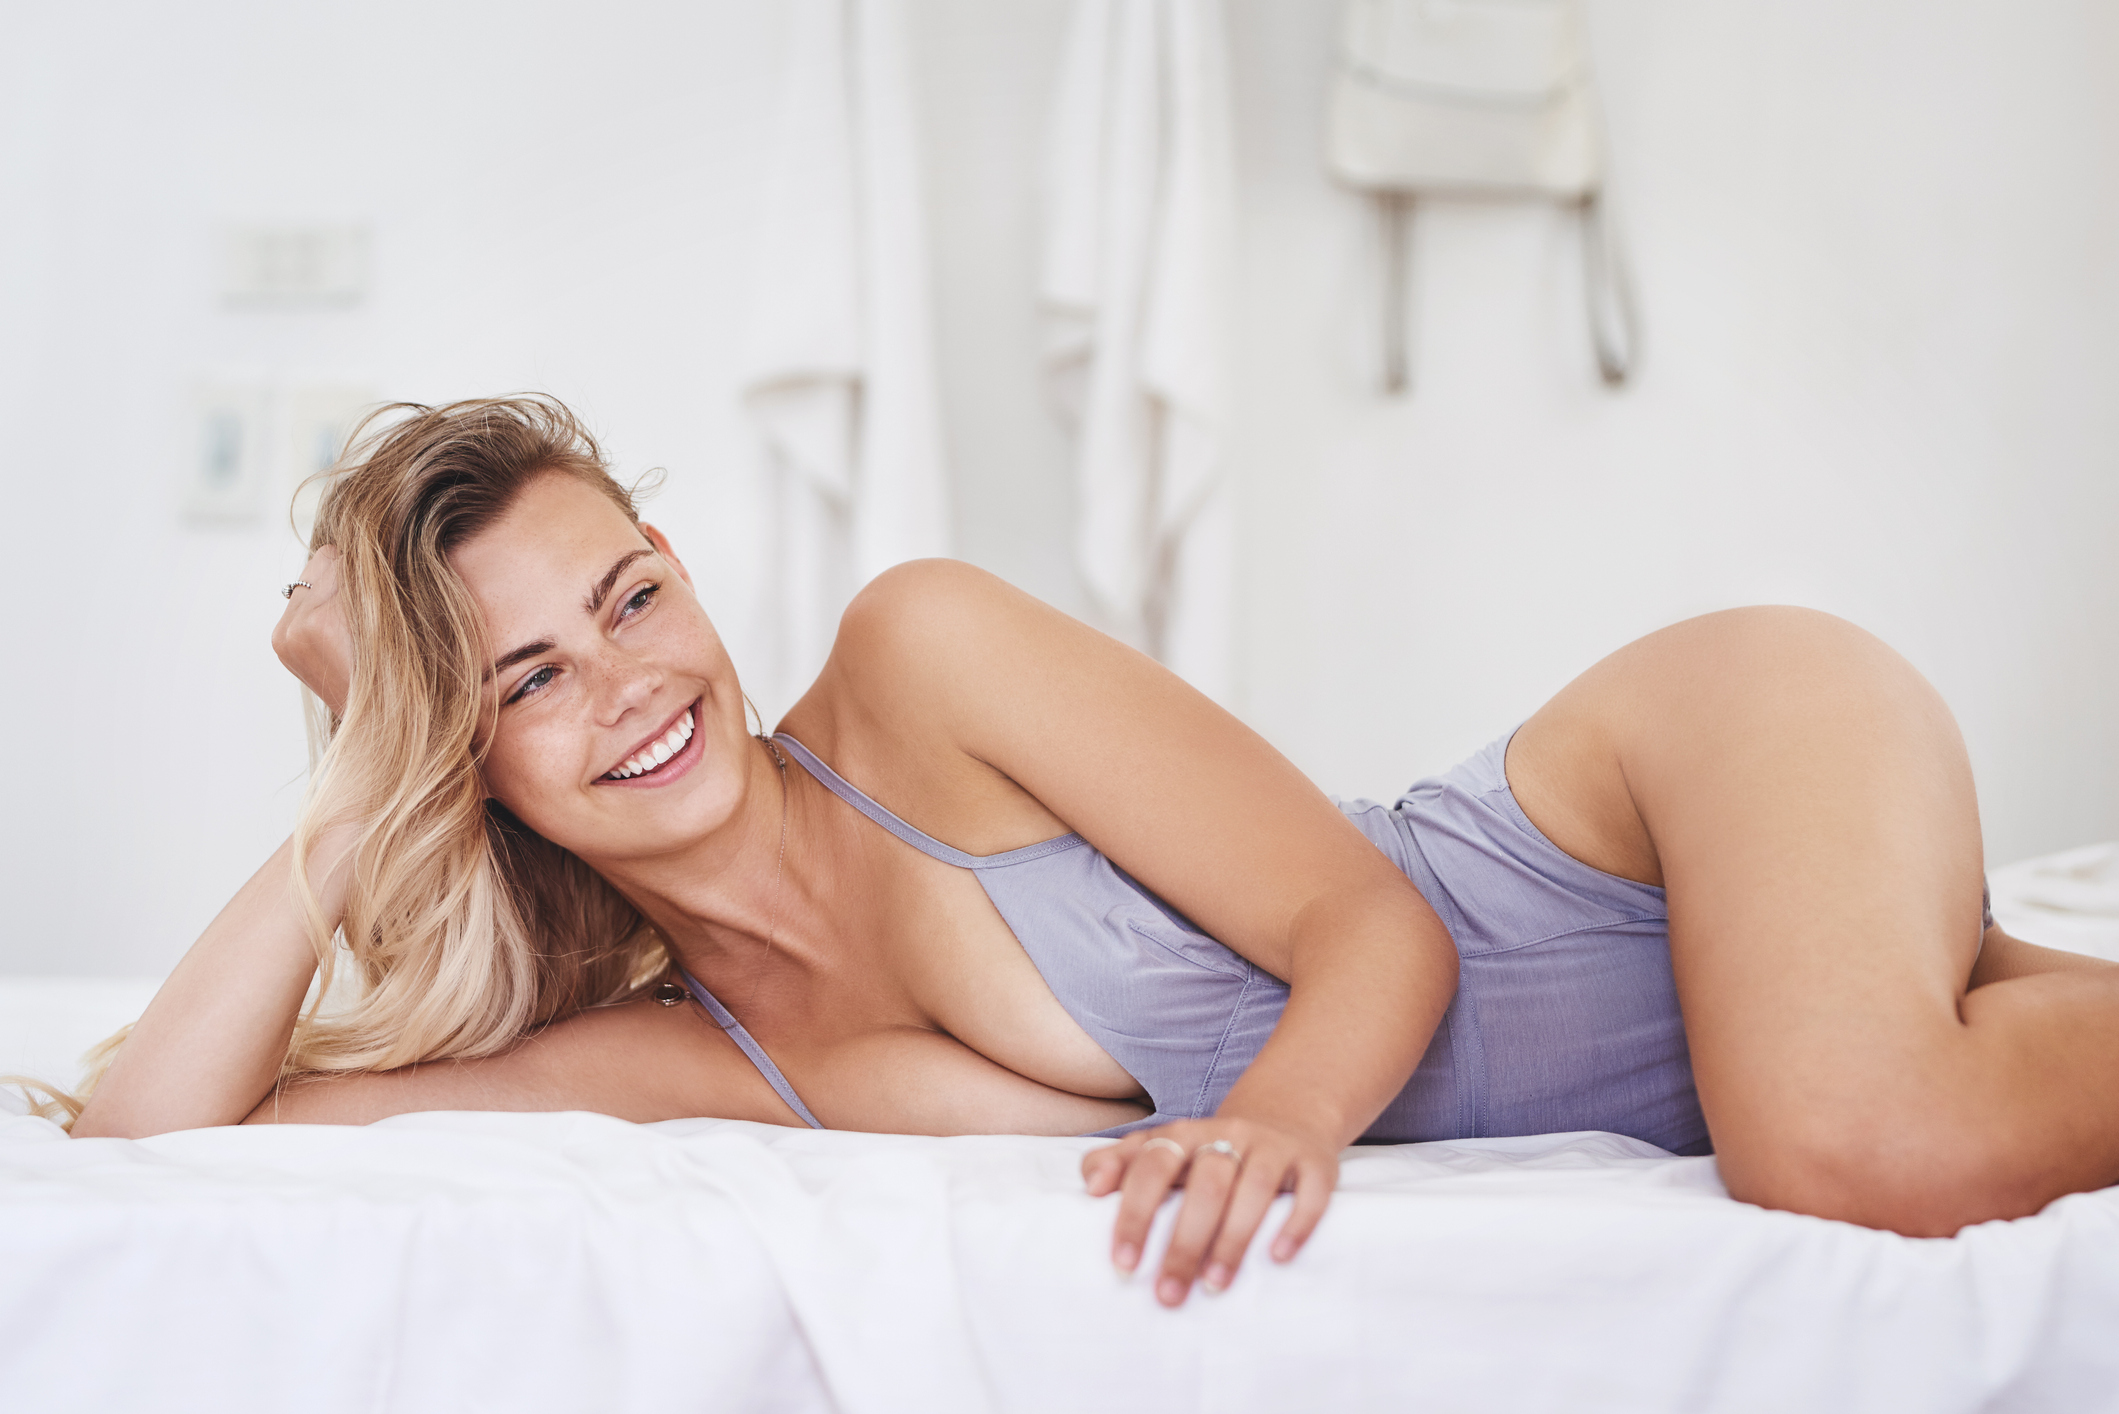 Cropped shot of an attractive young woman relaxing on her bed at home